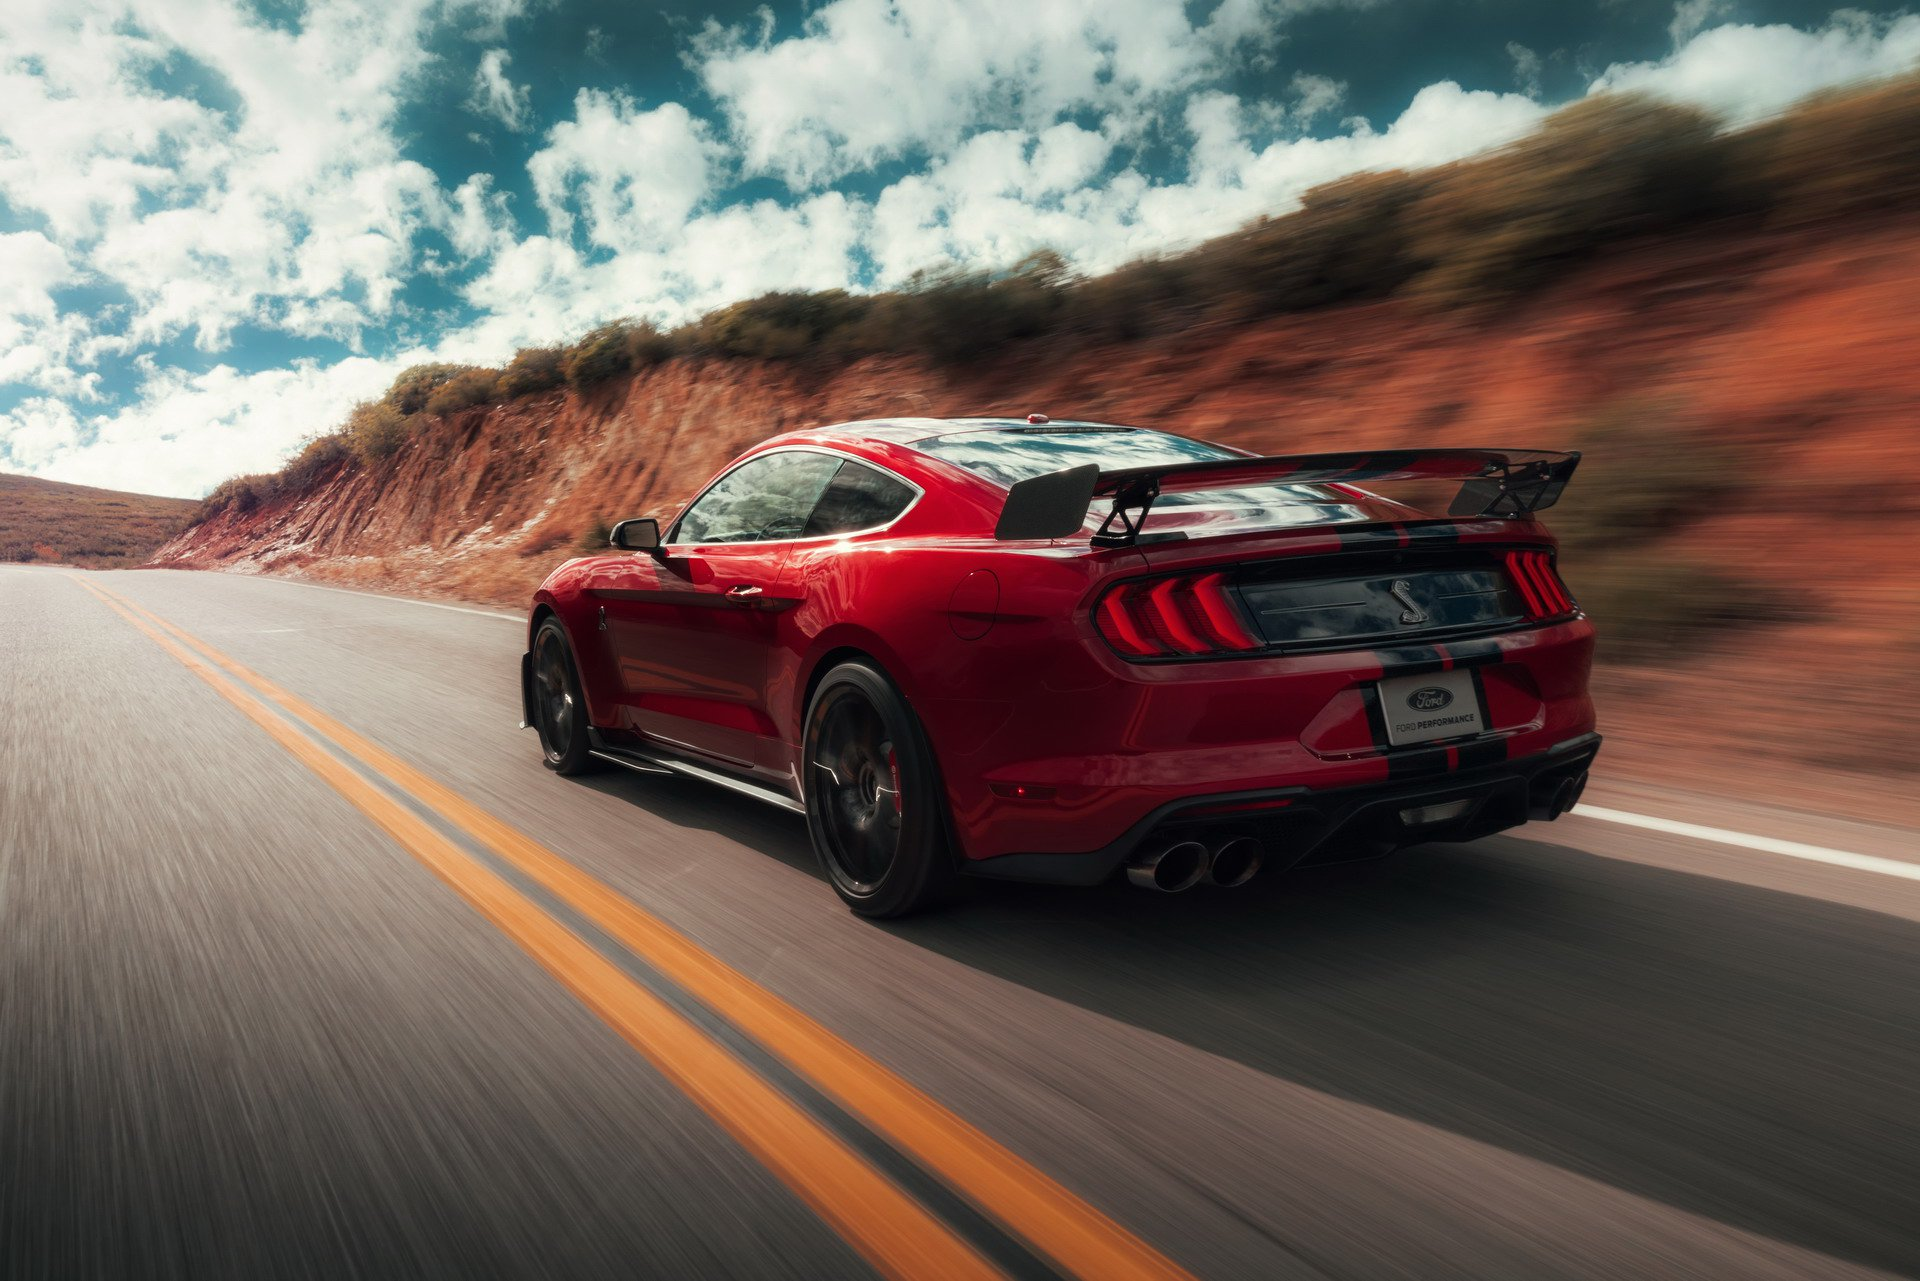 2020-ford-mustang-shelby-gt500-59.jpg